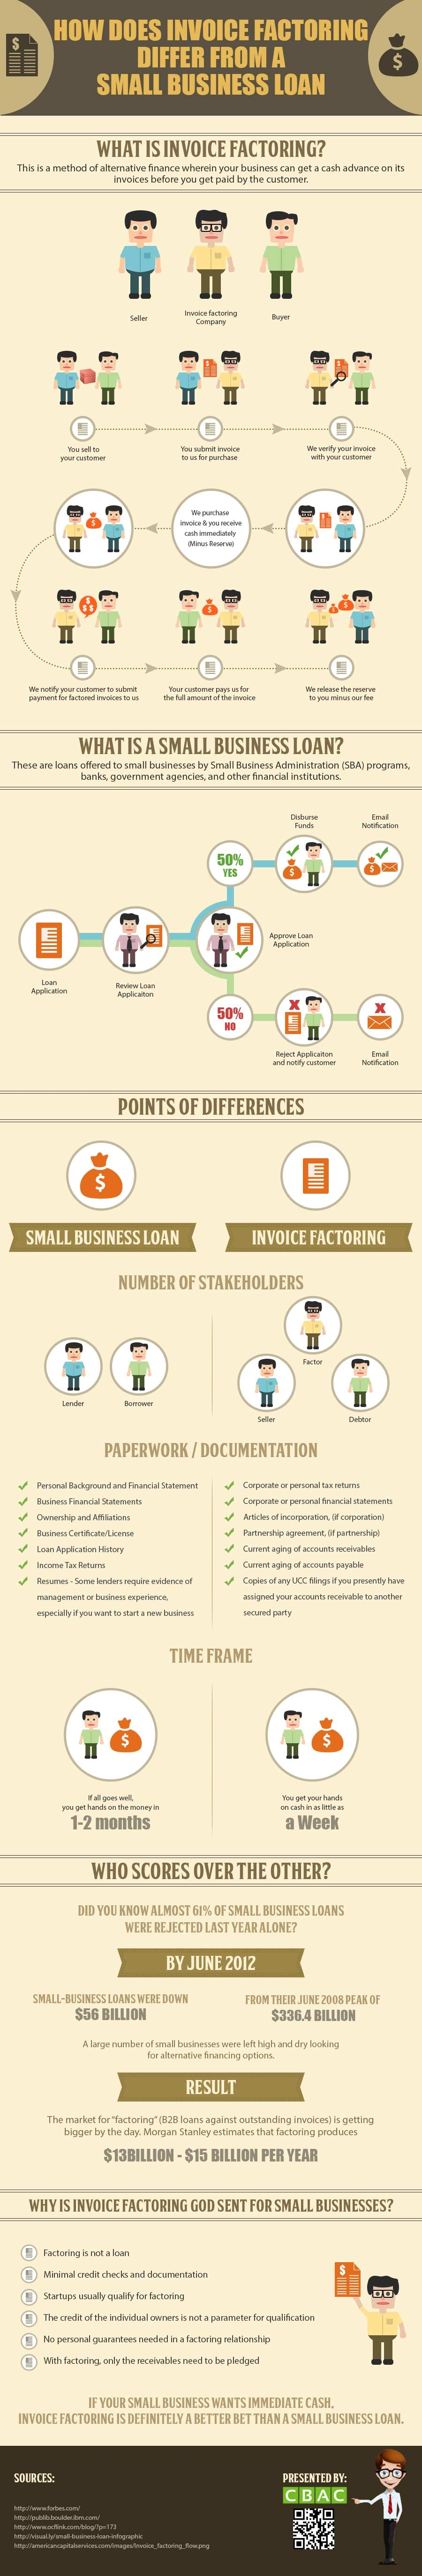 infographic invoice factoring vs small business loan differences small business invoice factoring